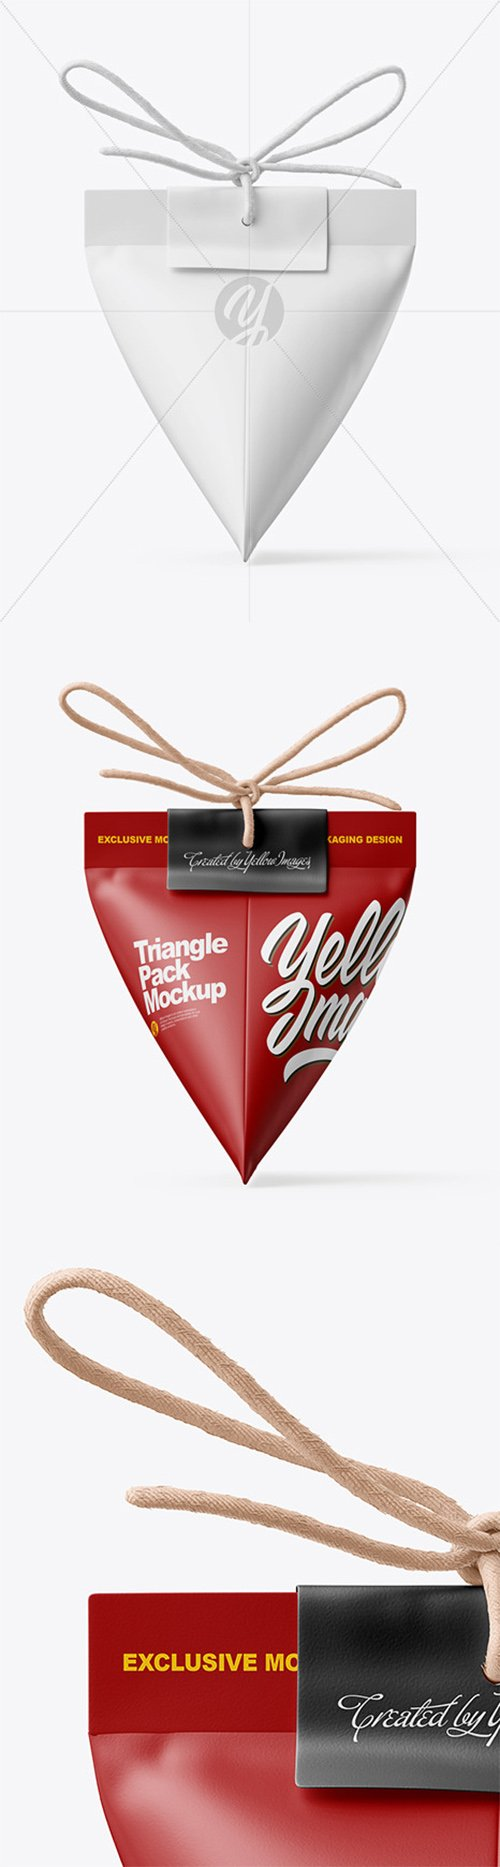 Triangle Matte Paper Packaging With Rope Bow Mockup 64559